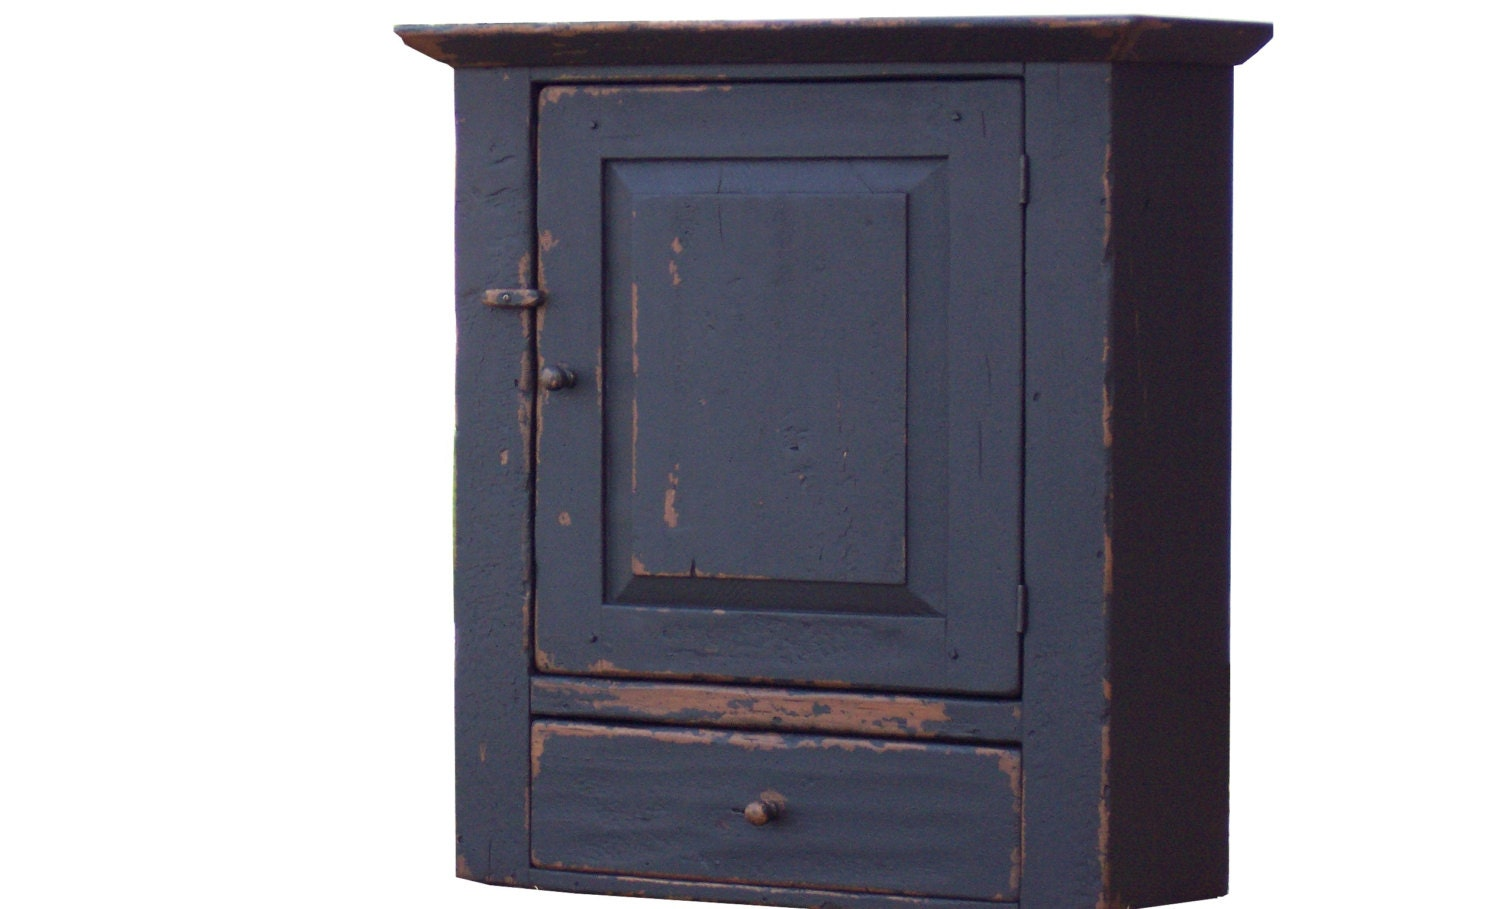 Primitive farmhouse wall cabinet cupboard by JosephSpinaleFurn